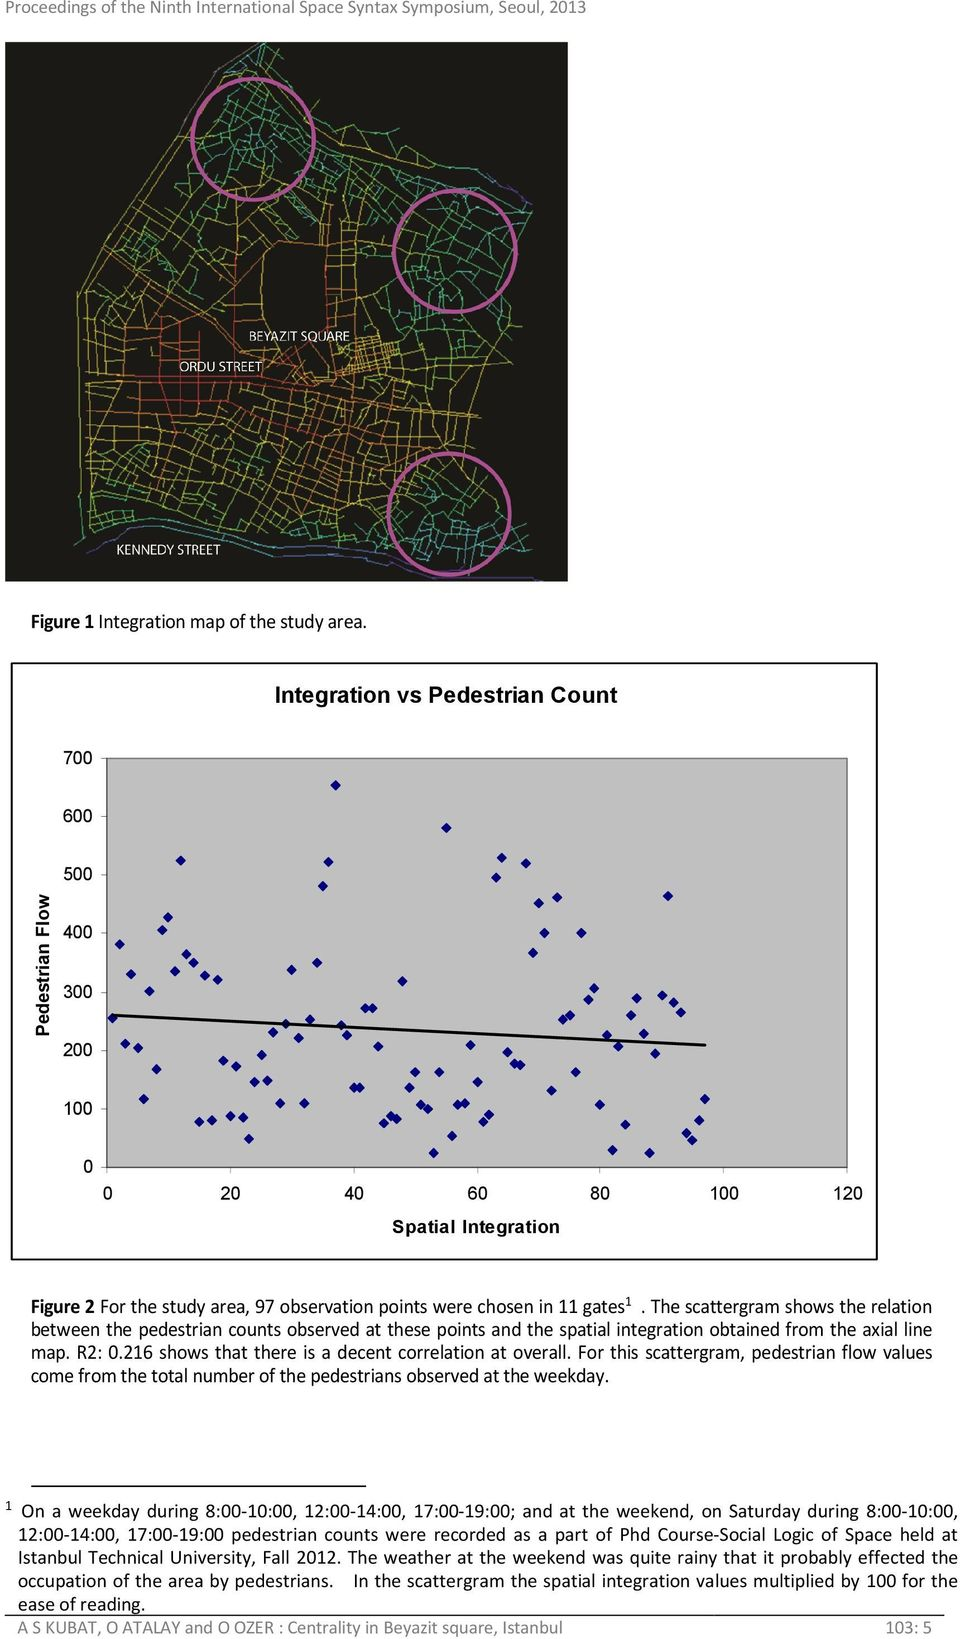 The scattergram shows the relation between the pedestrian counts observed at these points and the spatial integration obtained from the axial line map. R2: 0.